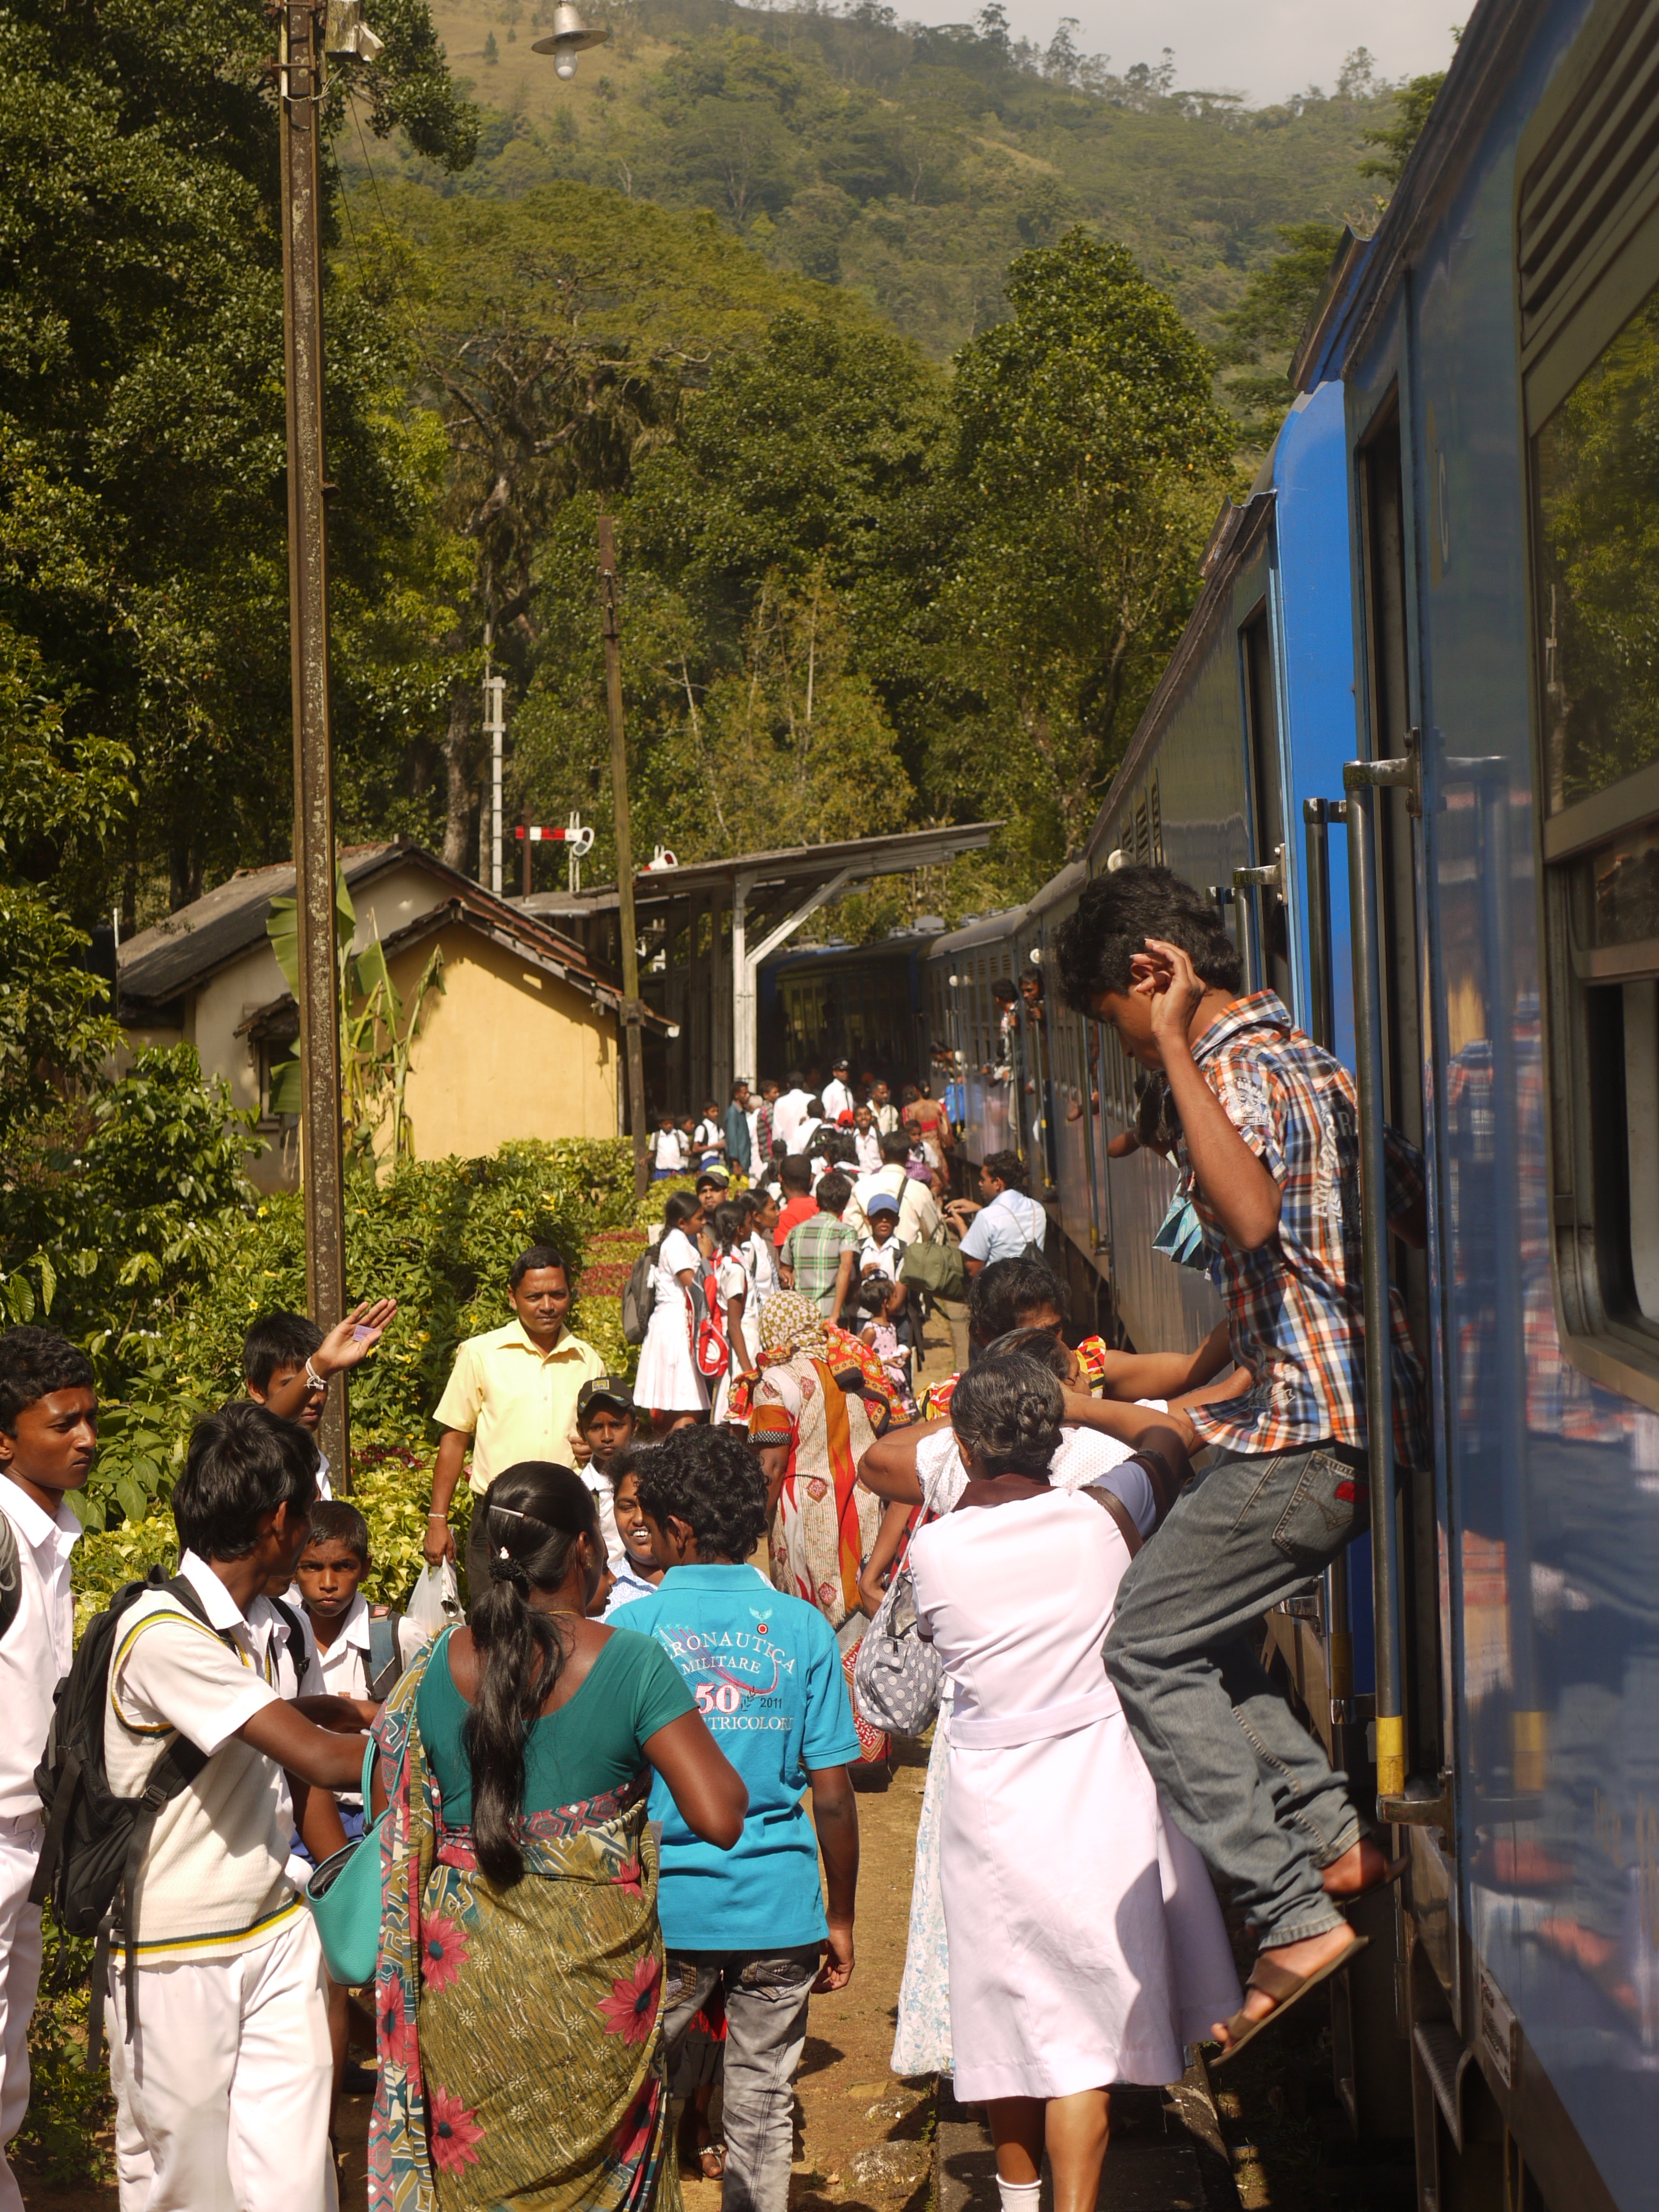 Jumping down from the train at a busy station during 'Sri Lanka's most beautiful train journey'